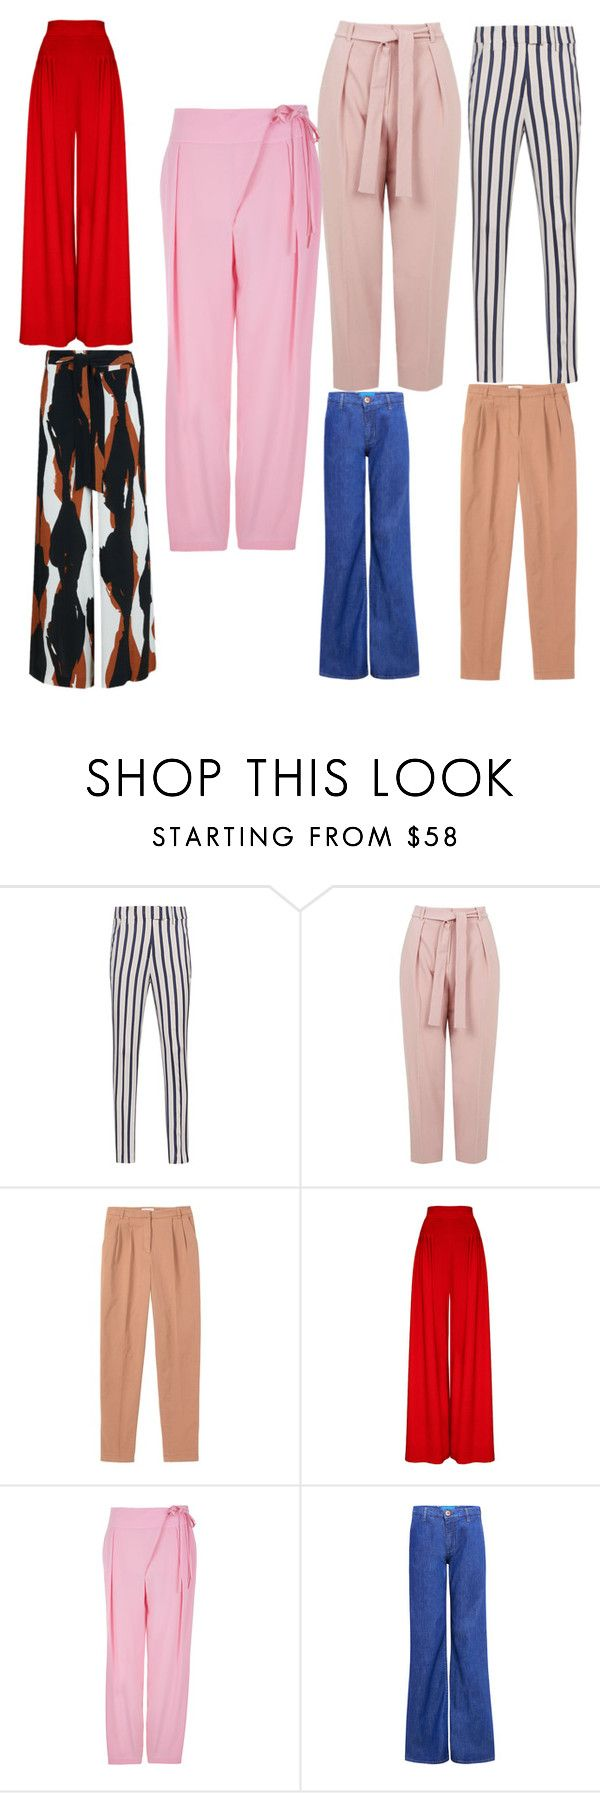 """""""Фасоны брюк"""" by siberia-natali ❤ liked on Polyvore featuring Dondup, Topshop, Toast, TIBI and M.i.h Jeans"""